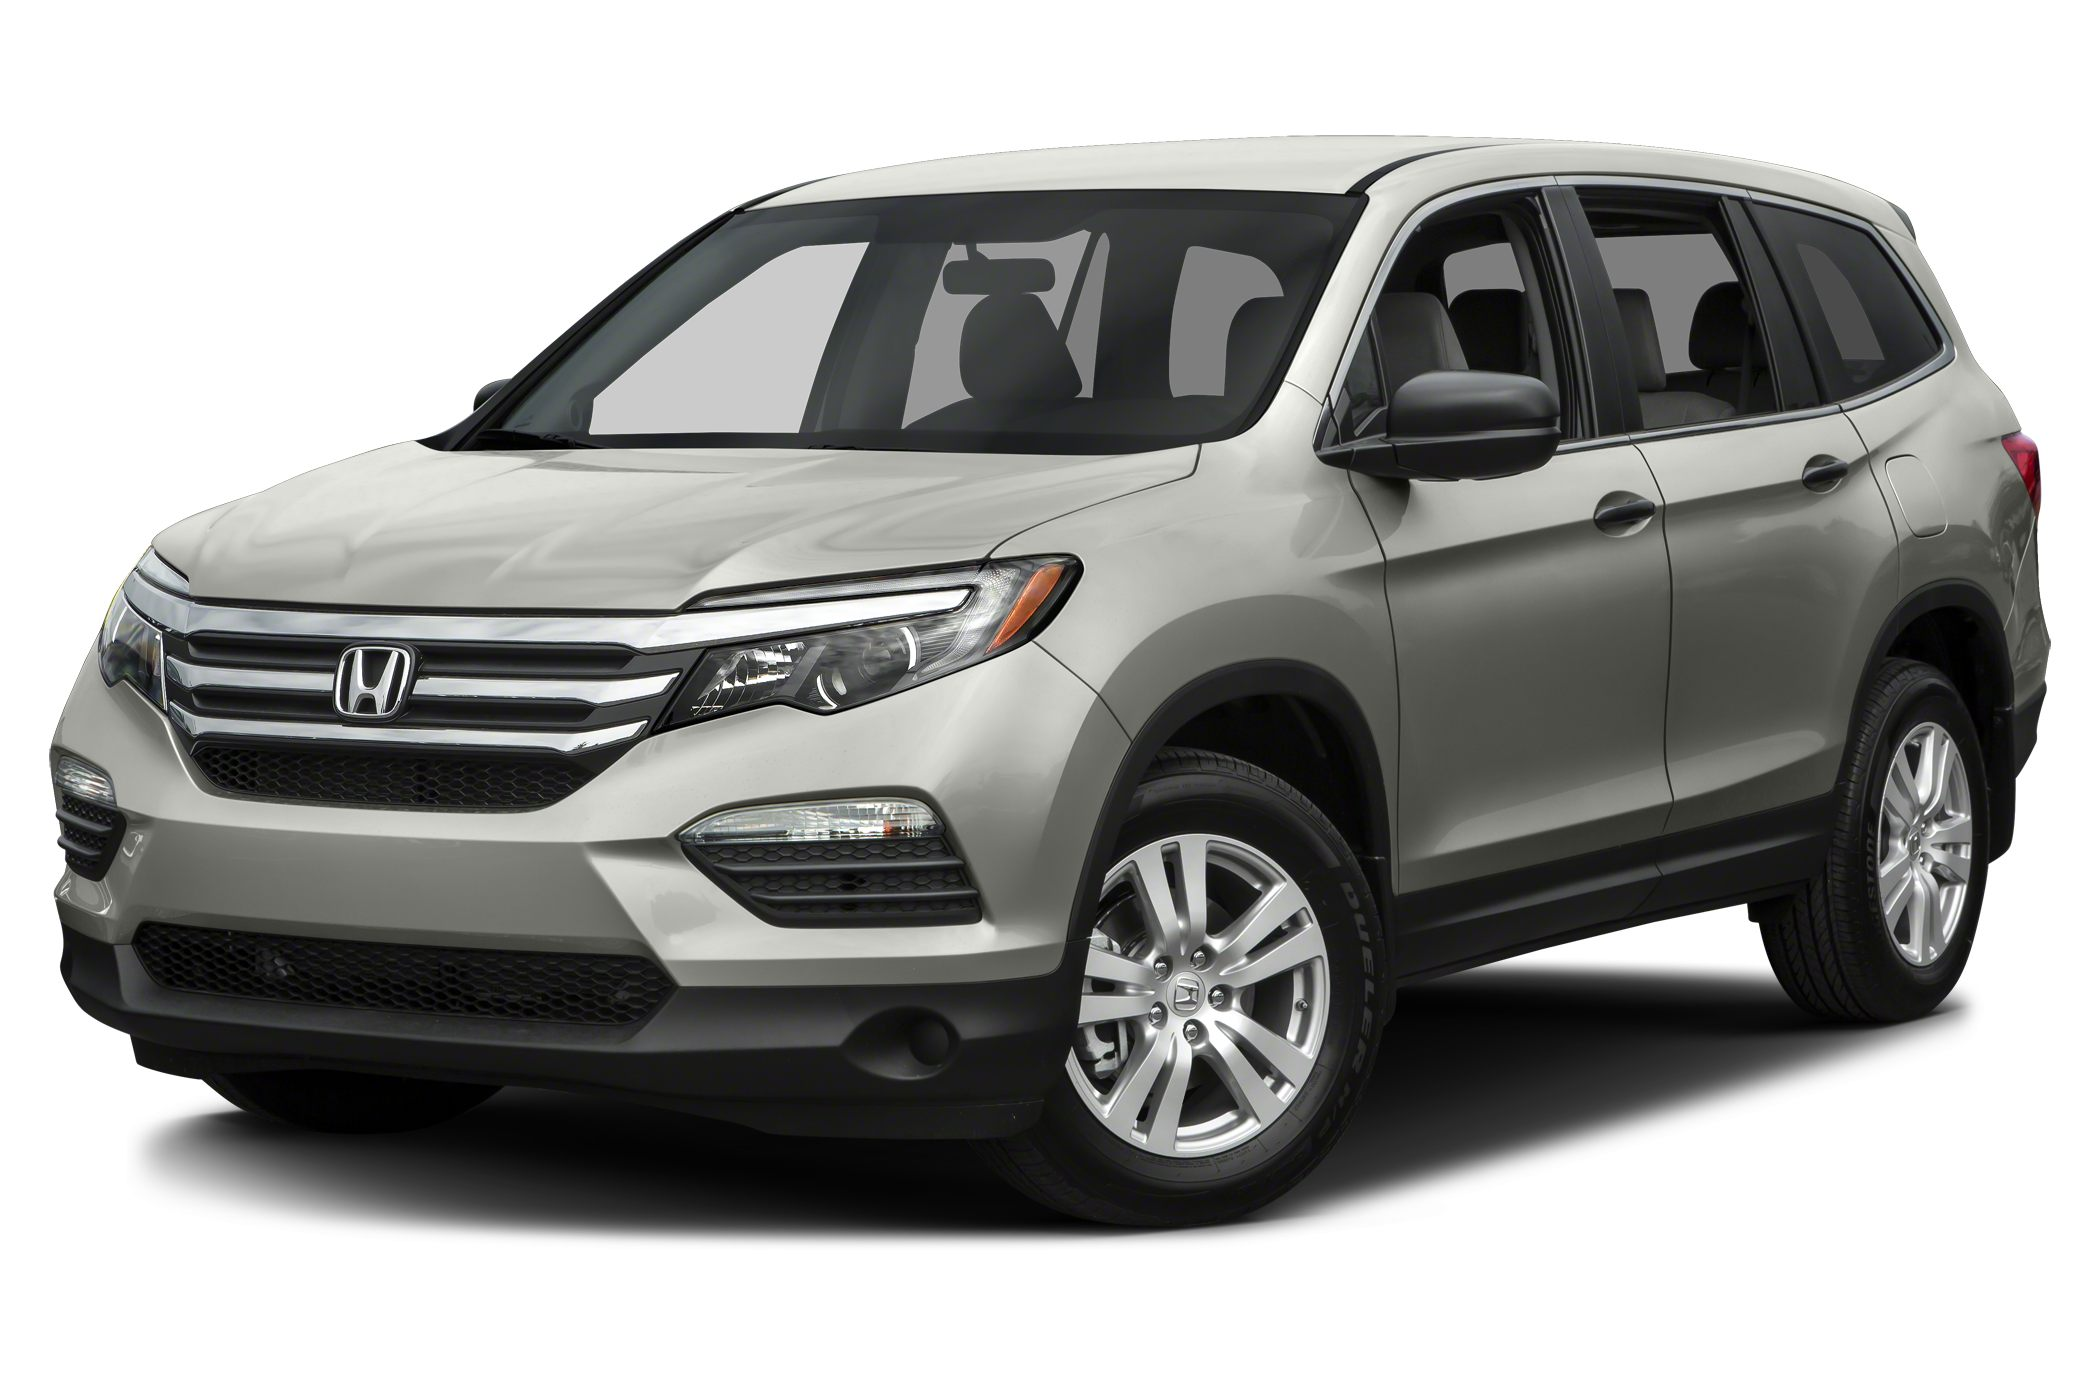 Honda pilot news photos and buying information autoblog for Honda pilot images